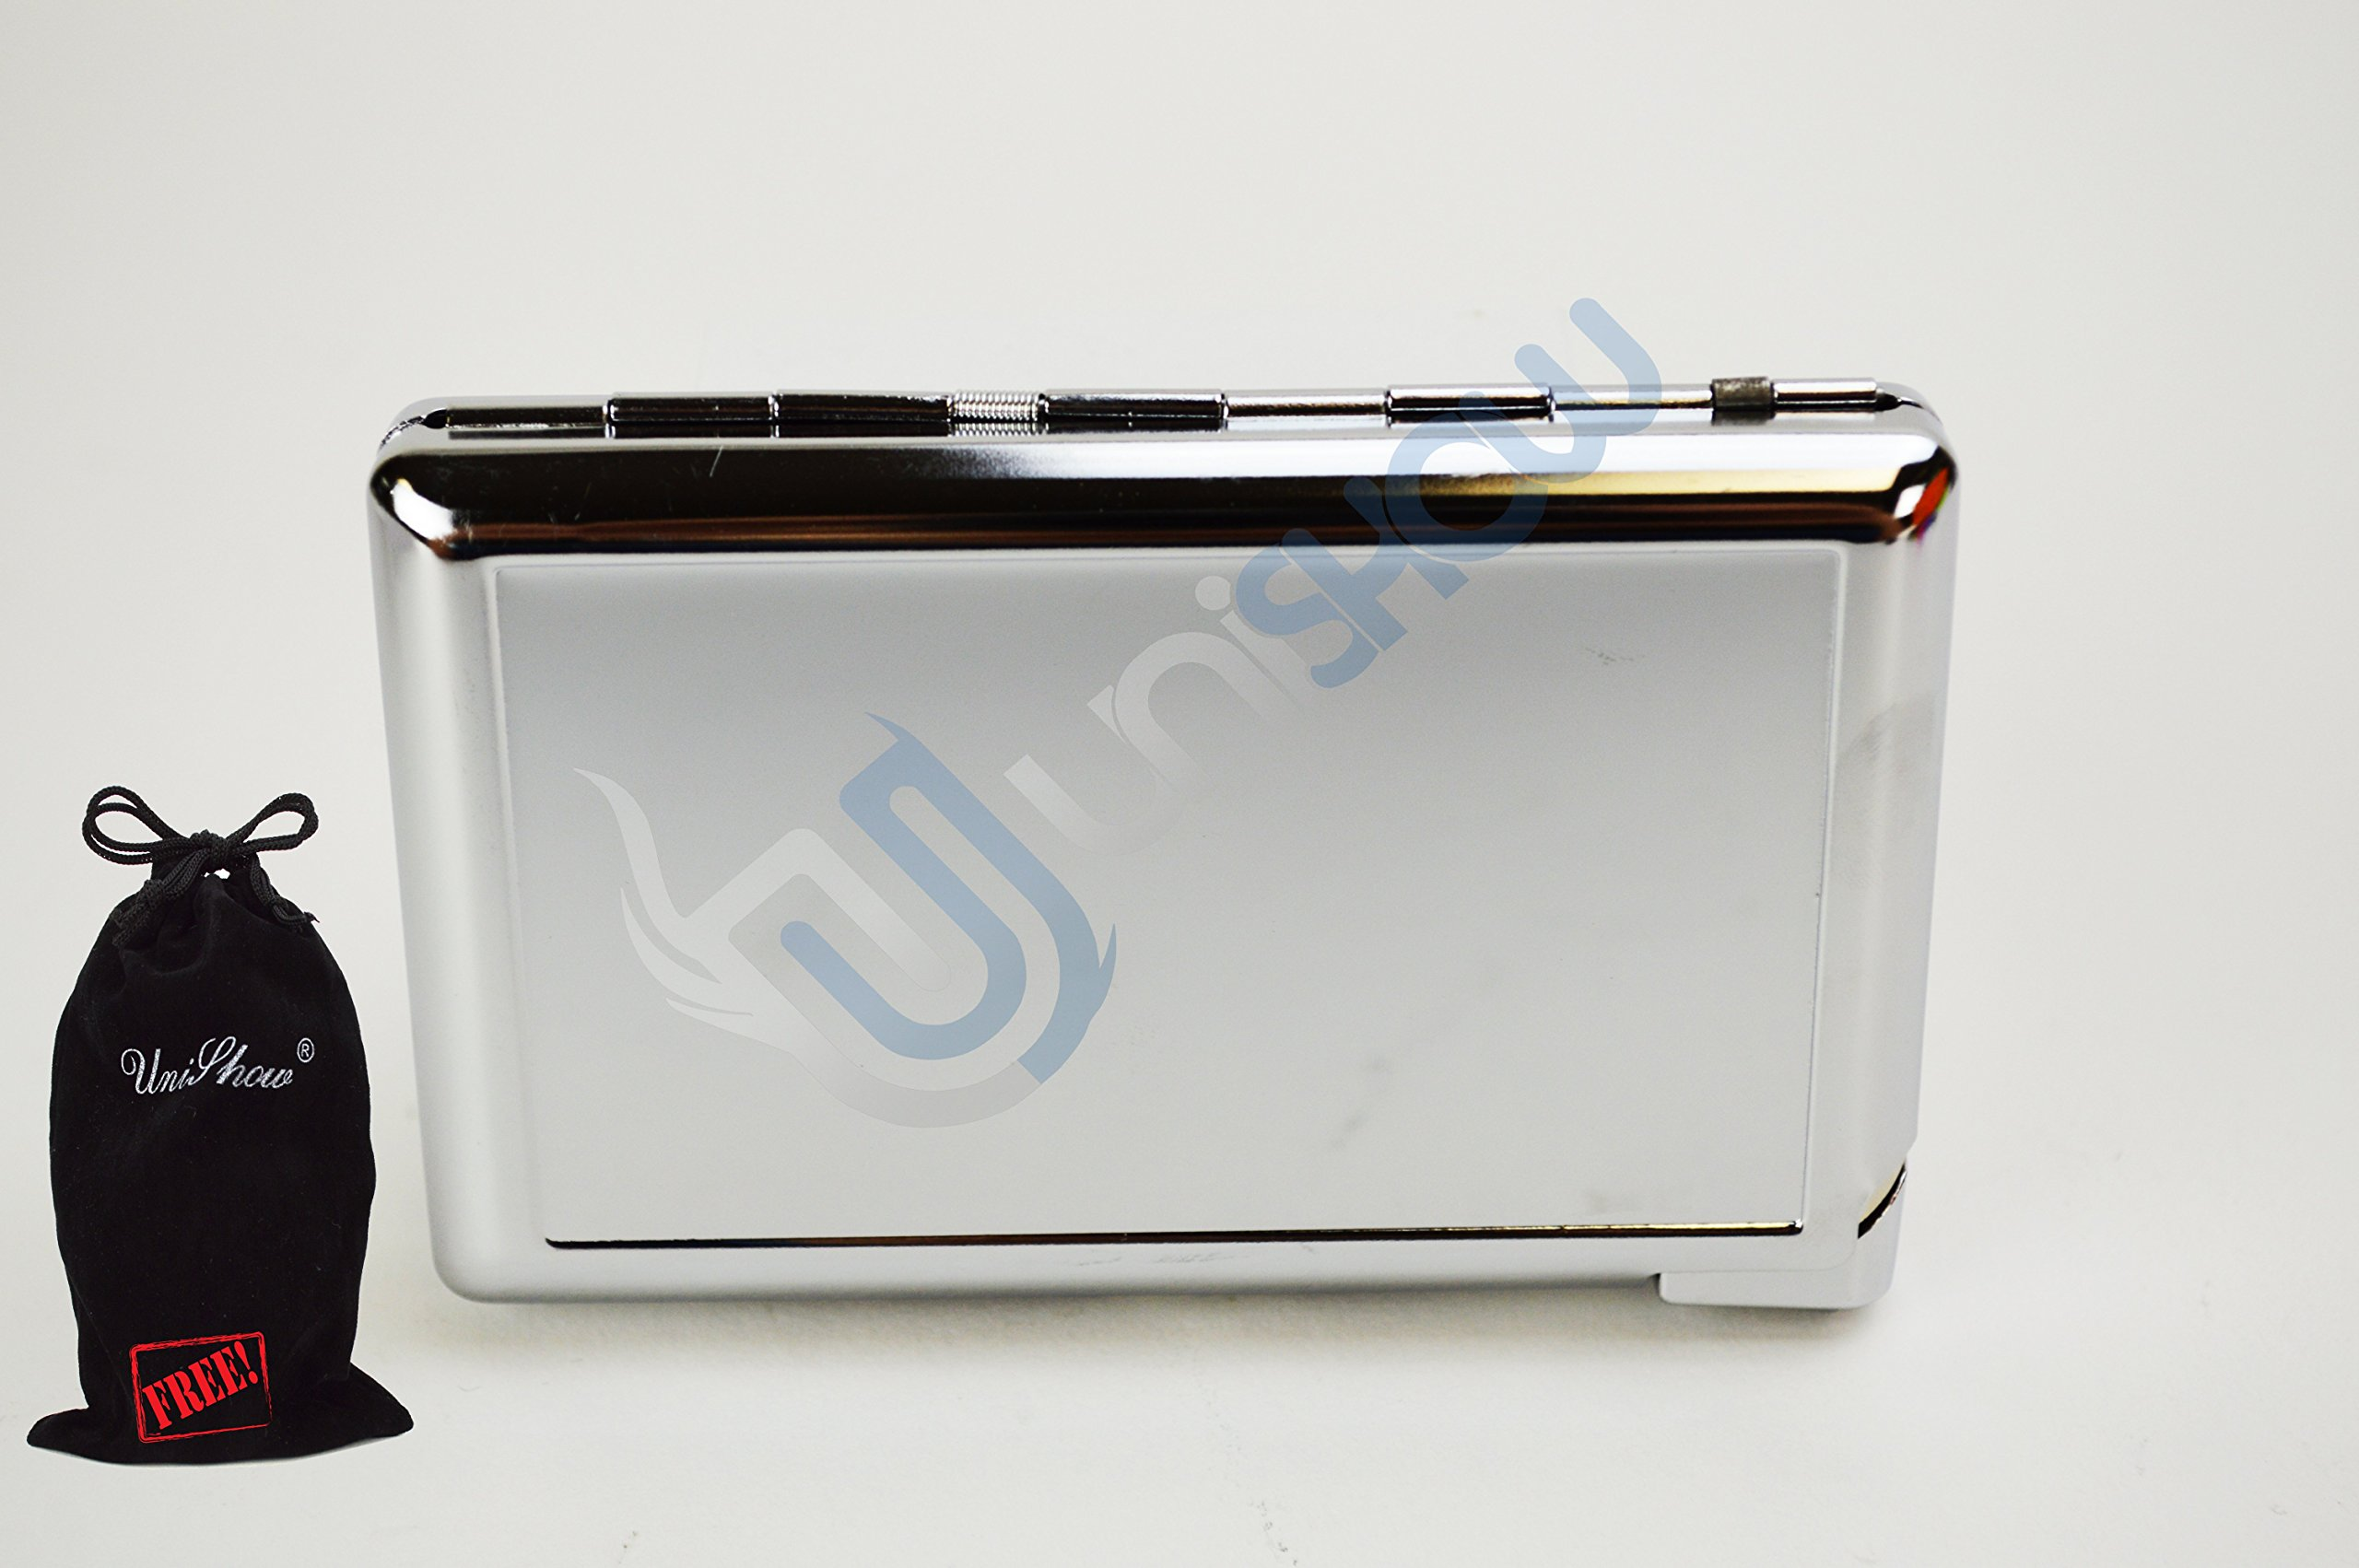 Unishow 4.25'' Stainless Steel Cigarette Case W/ Built-in Lighter W/ a FREE Velvet Unishow Pouch